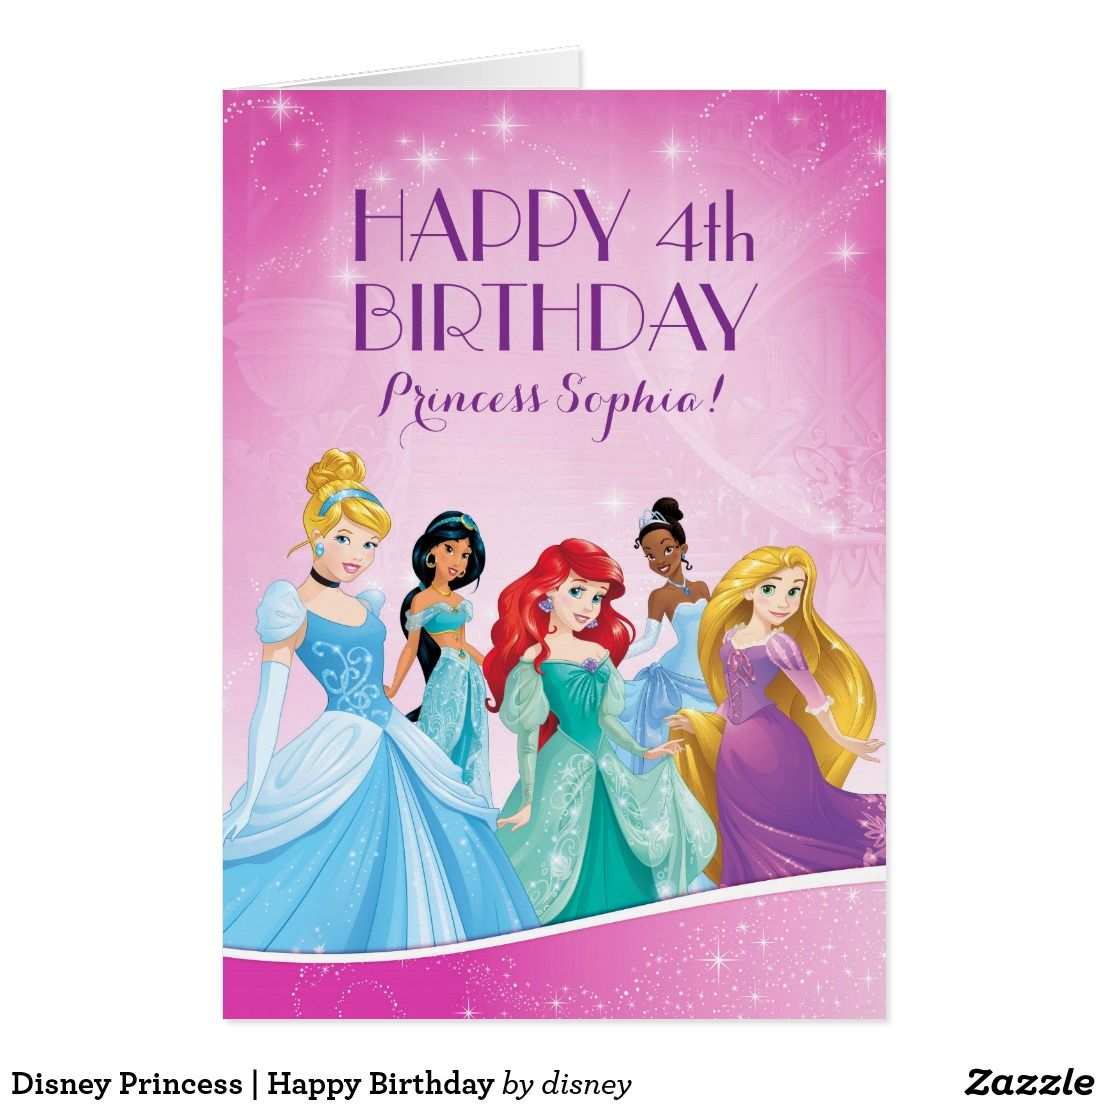 Disney princess happy birthday card birthday cards pinterest disney birthday kristyandbryce Choice Image